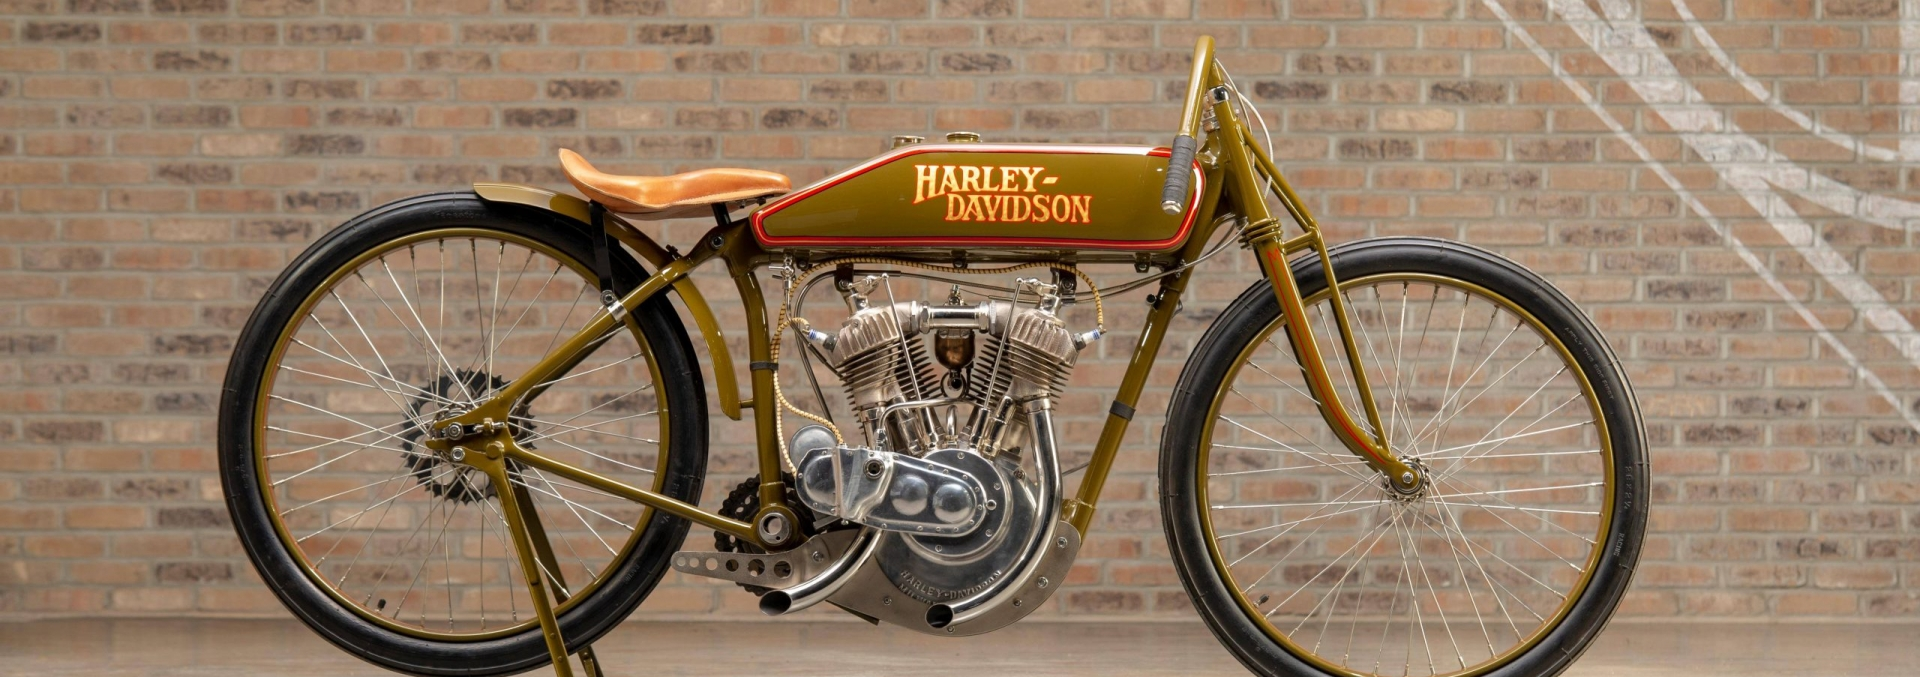 1925 Harley-Davidson Board Track Racer Replica at the Throttlestop Museum